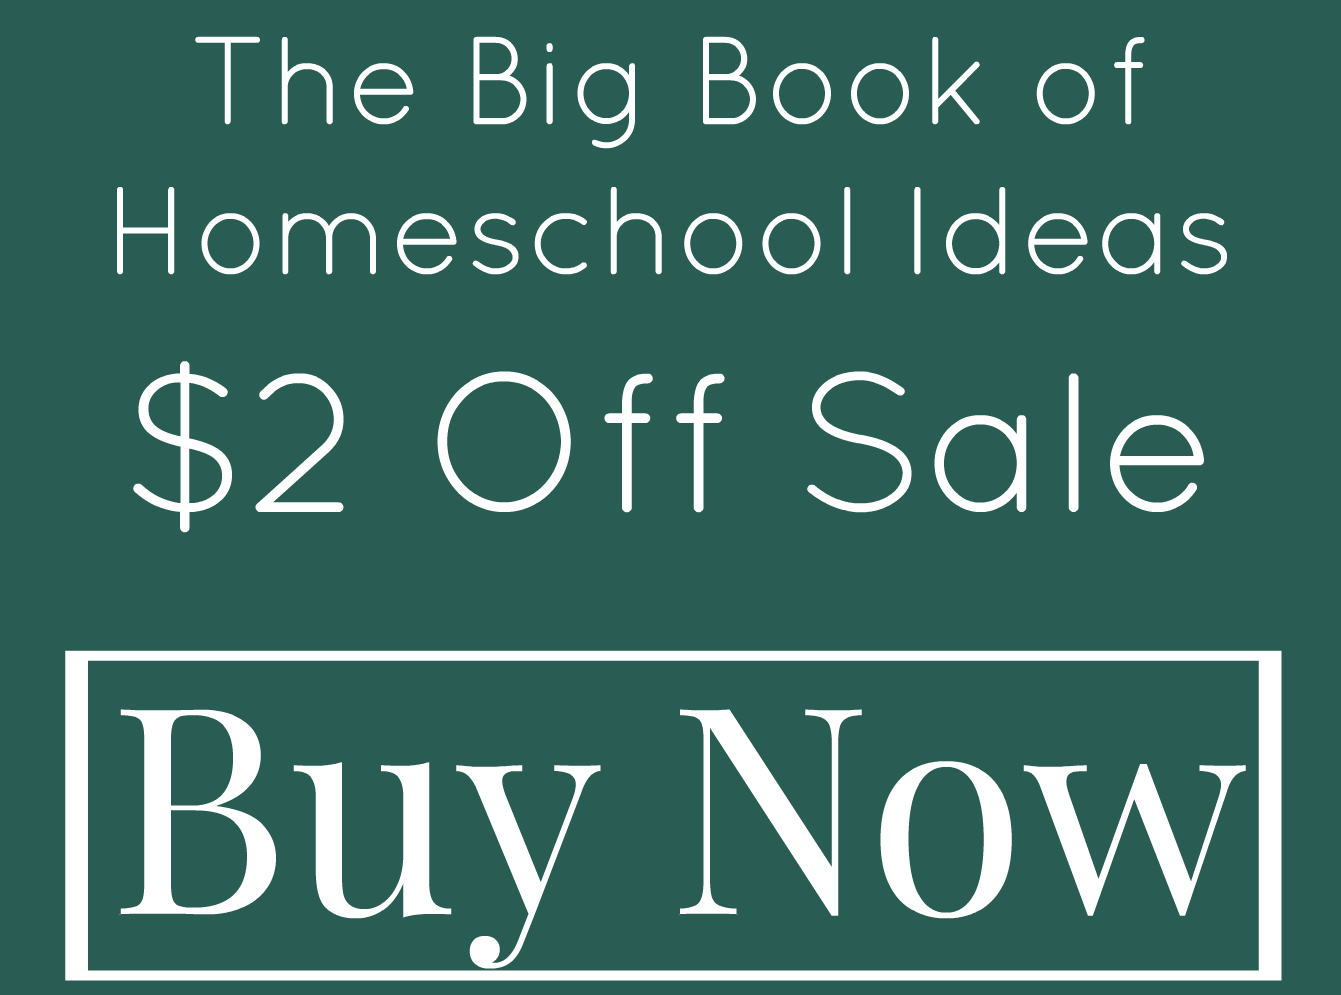 The Big Book of Homeschool Ideas Sale via Great Peace Academy